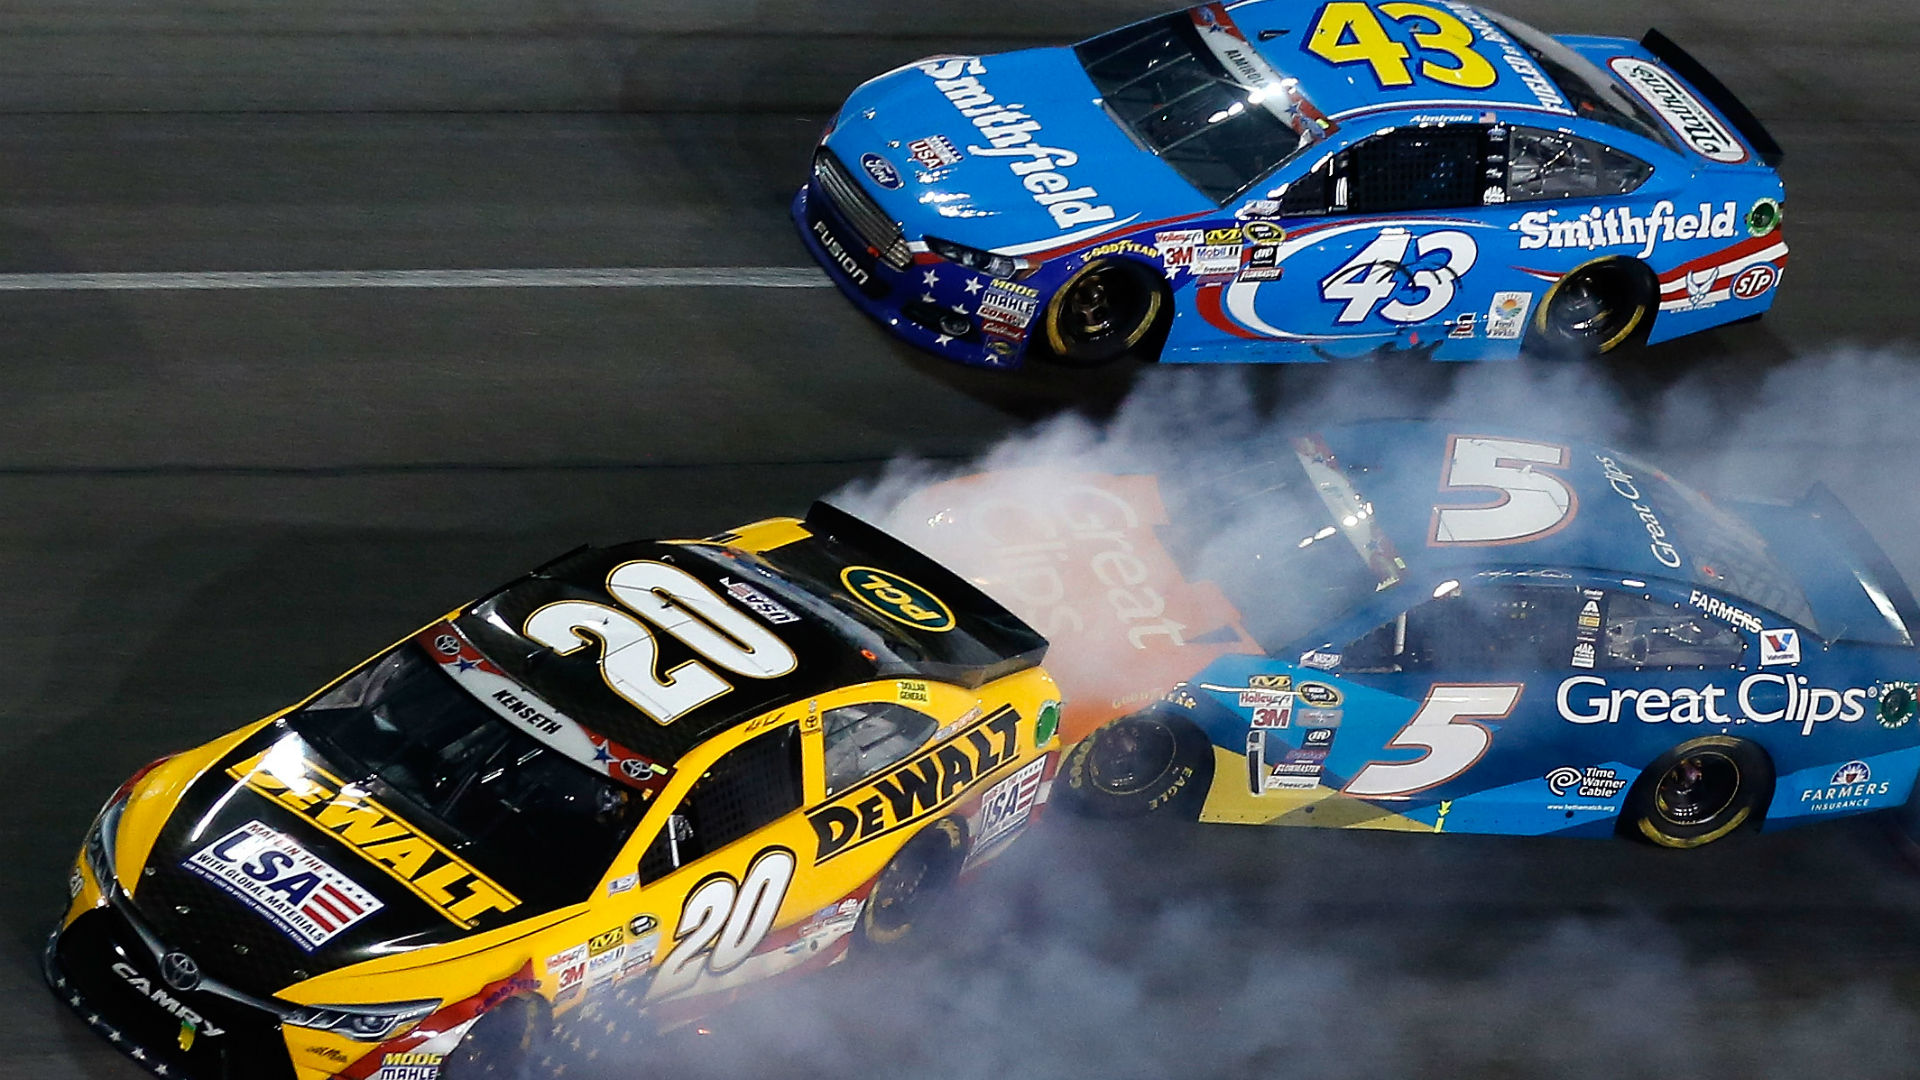 2018 NASCAR free agents: Danica Patrick latest to join extensive list